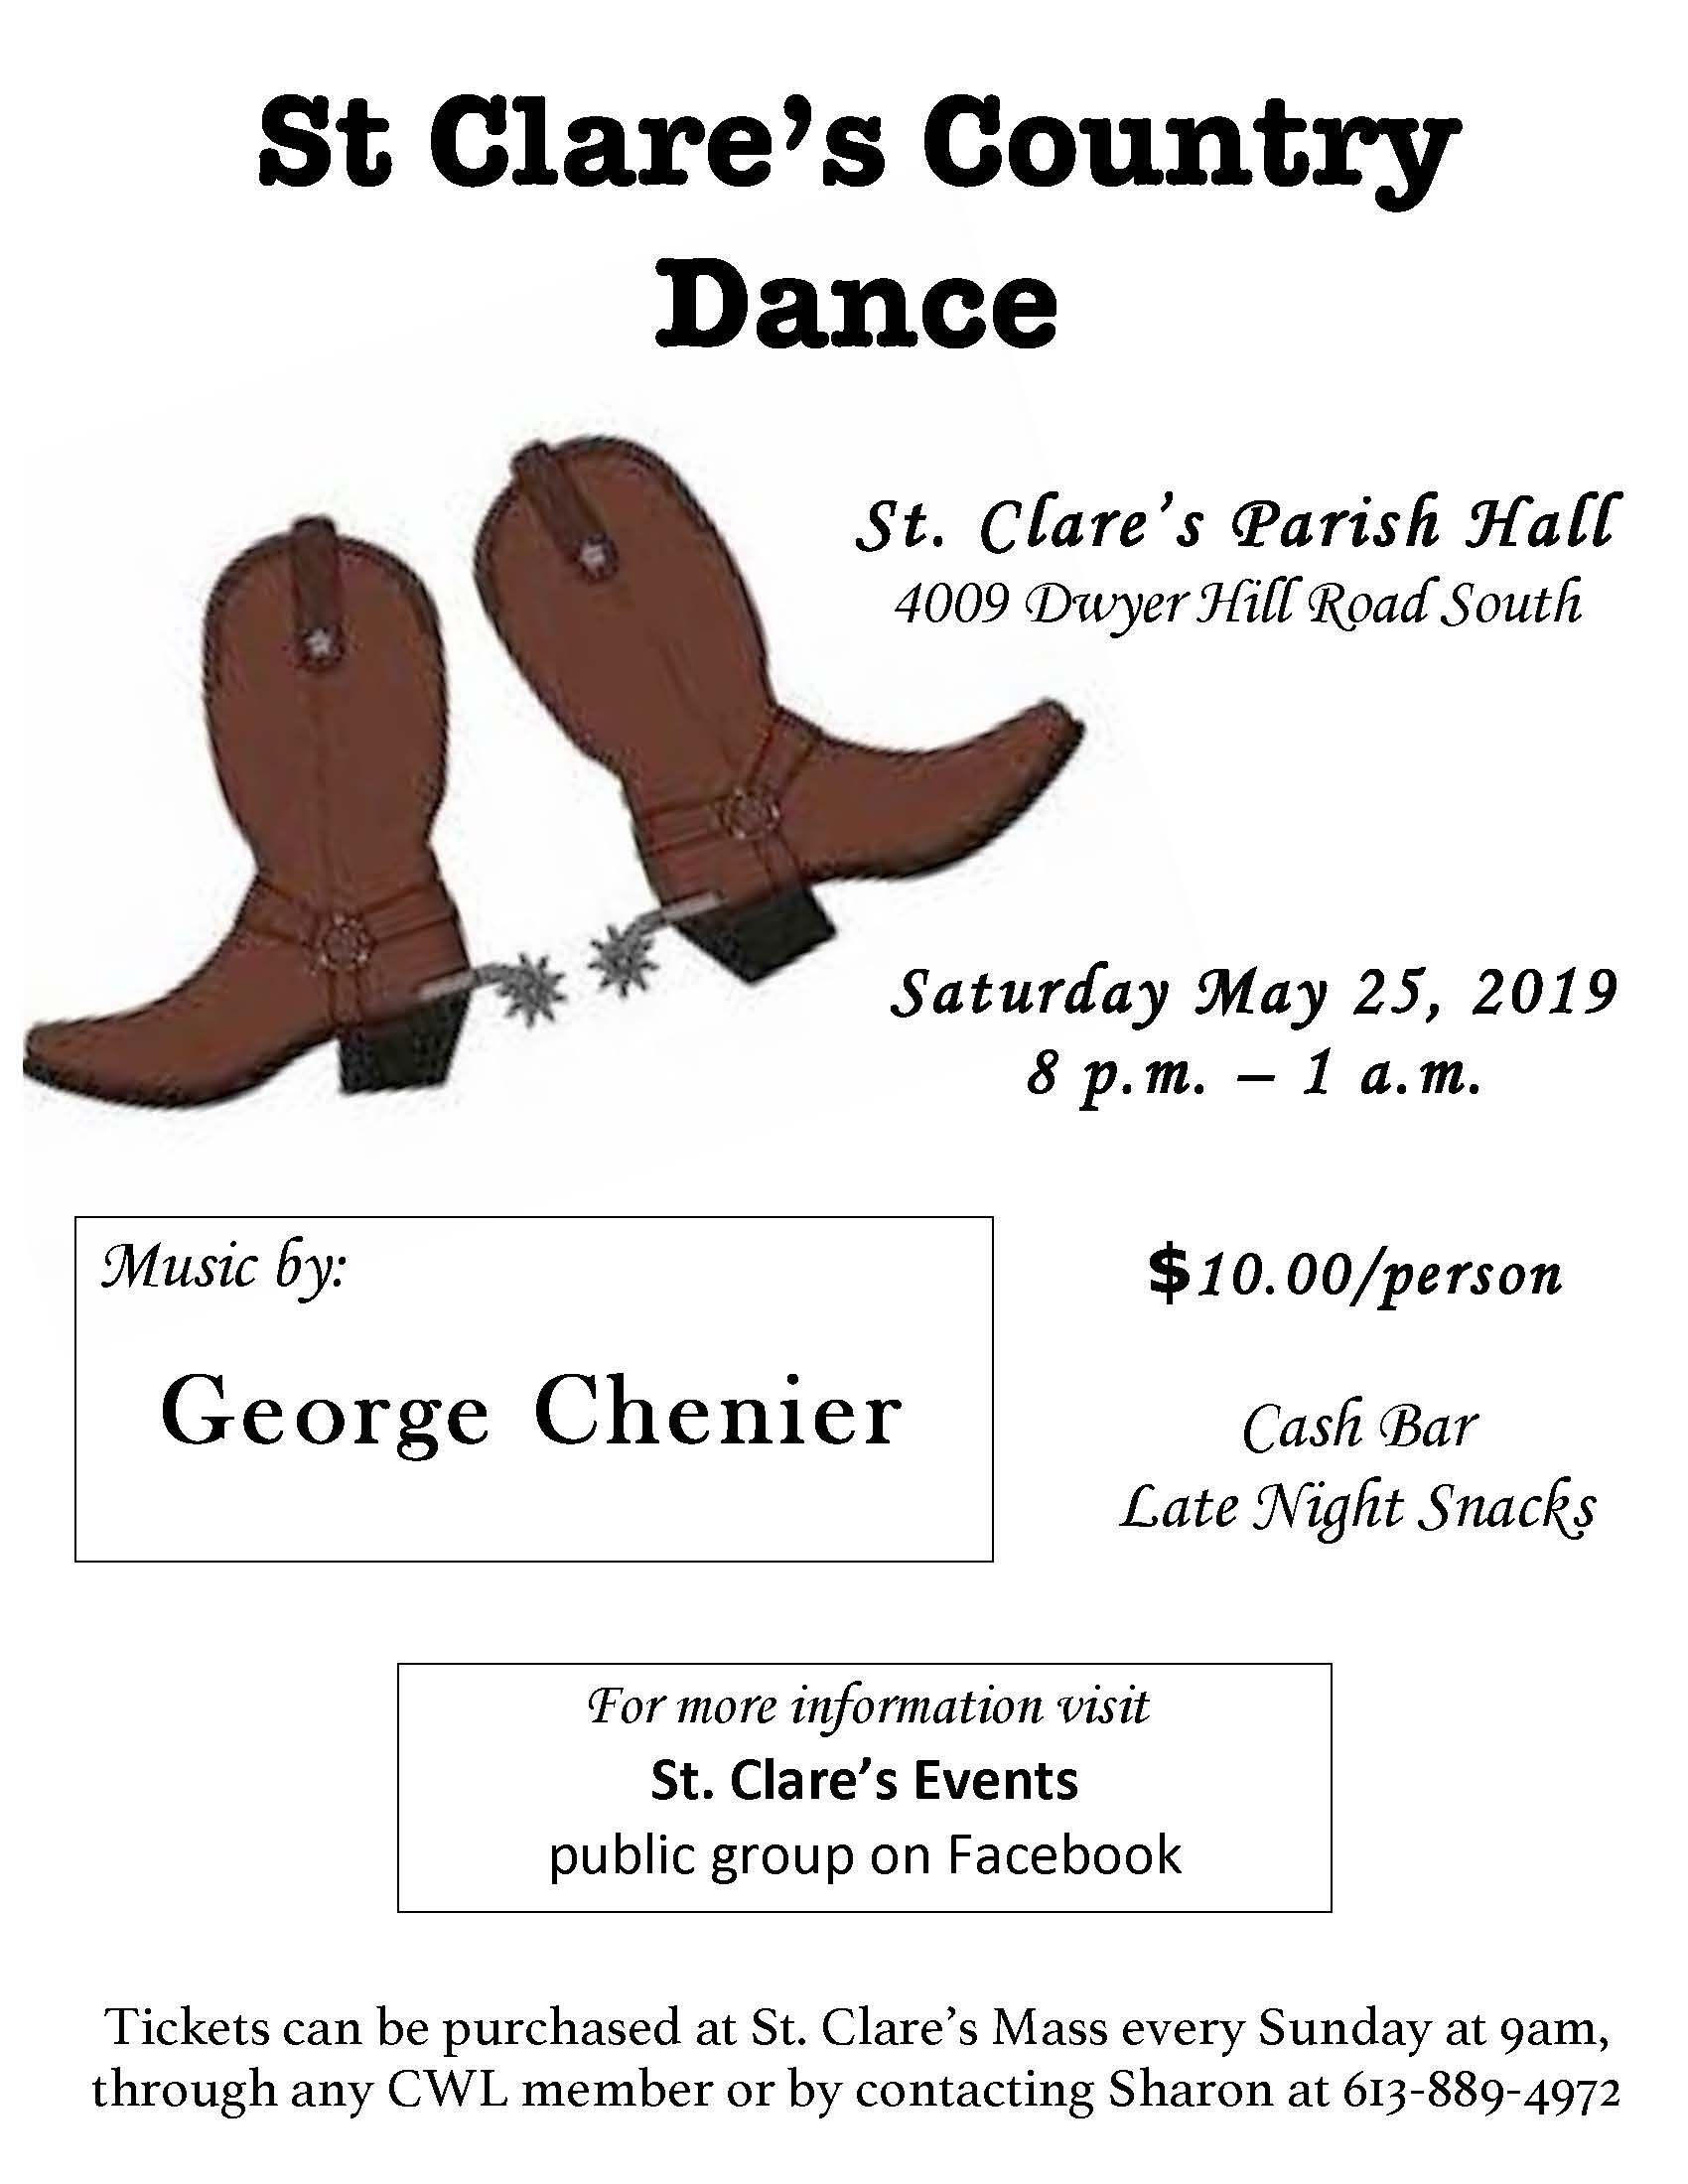 St Clare's Country Dance Poster 2019.jpg